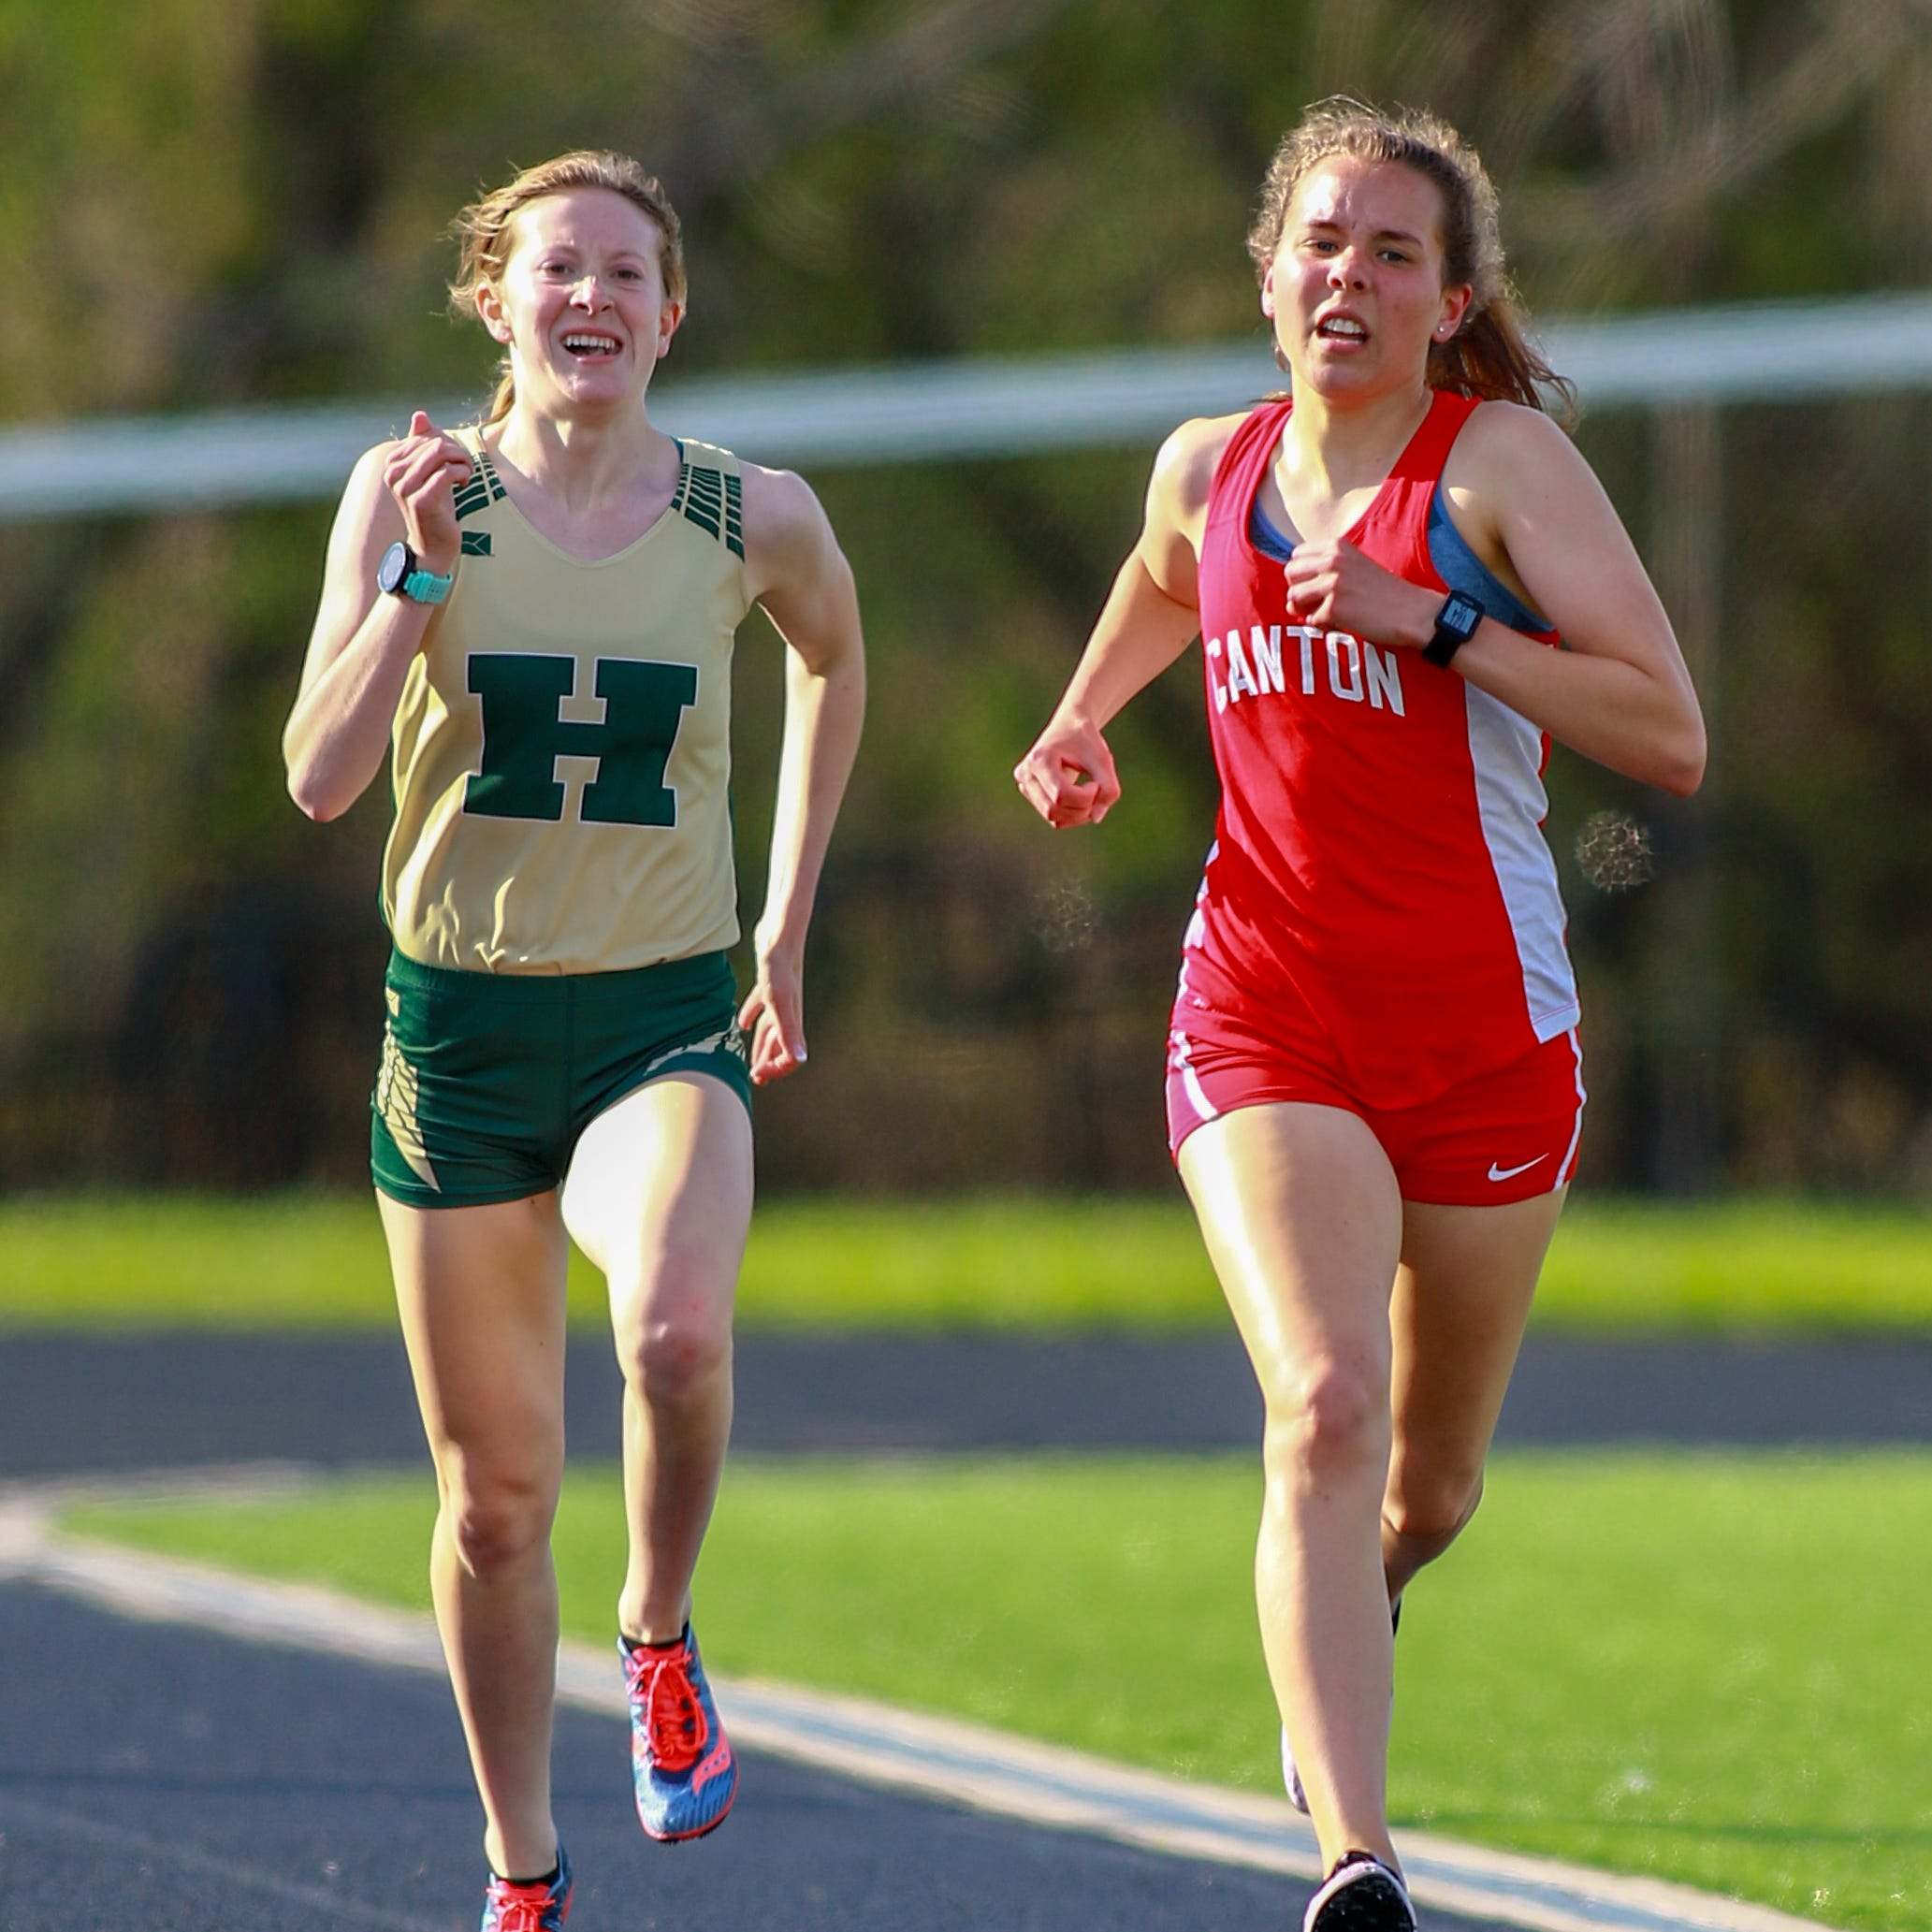 Record-setting Howell runner has tried nearly every track event